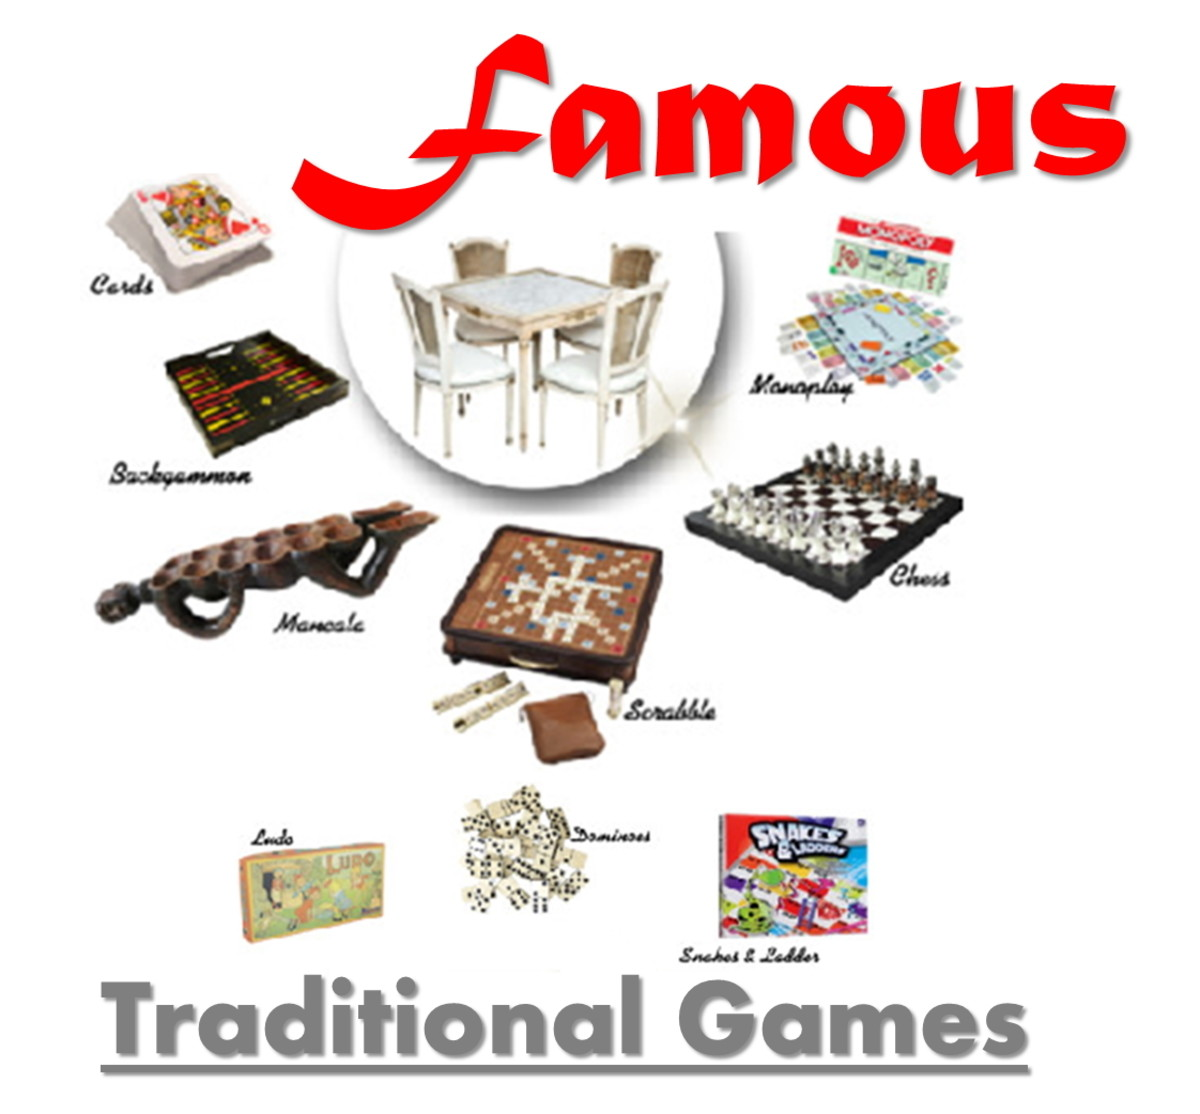 9 Famous Traditional Board, Dice, and Card Games